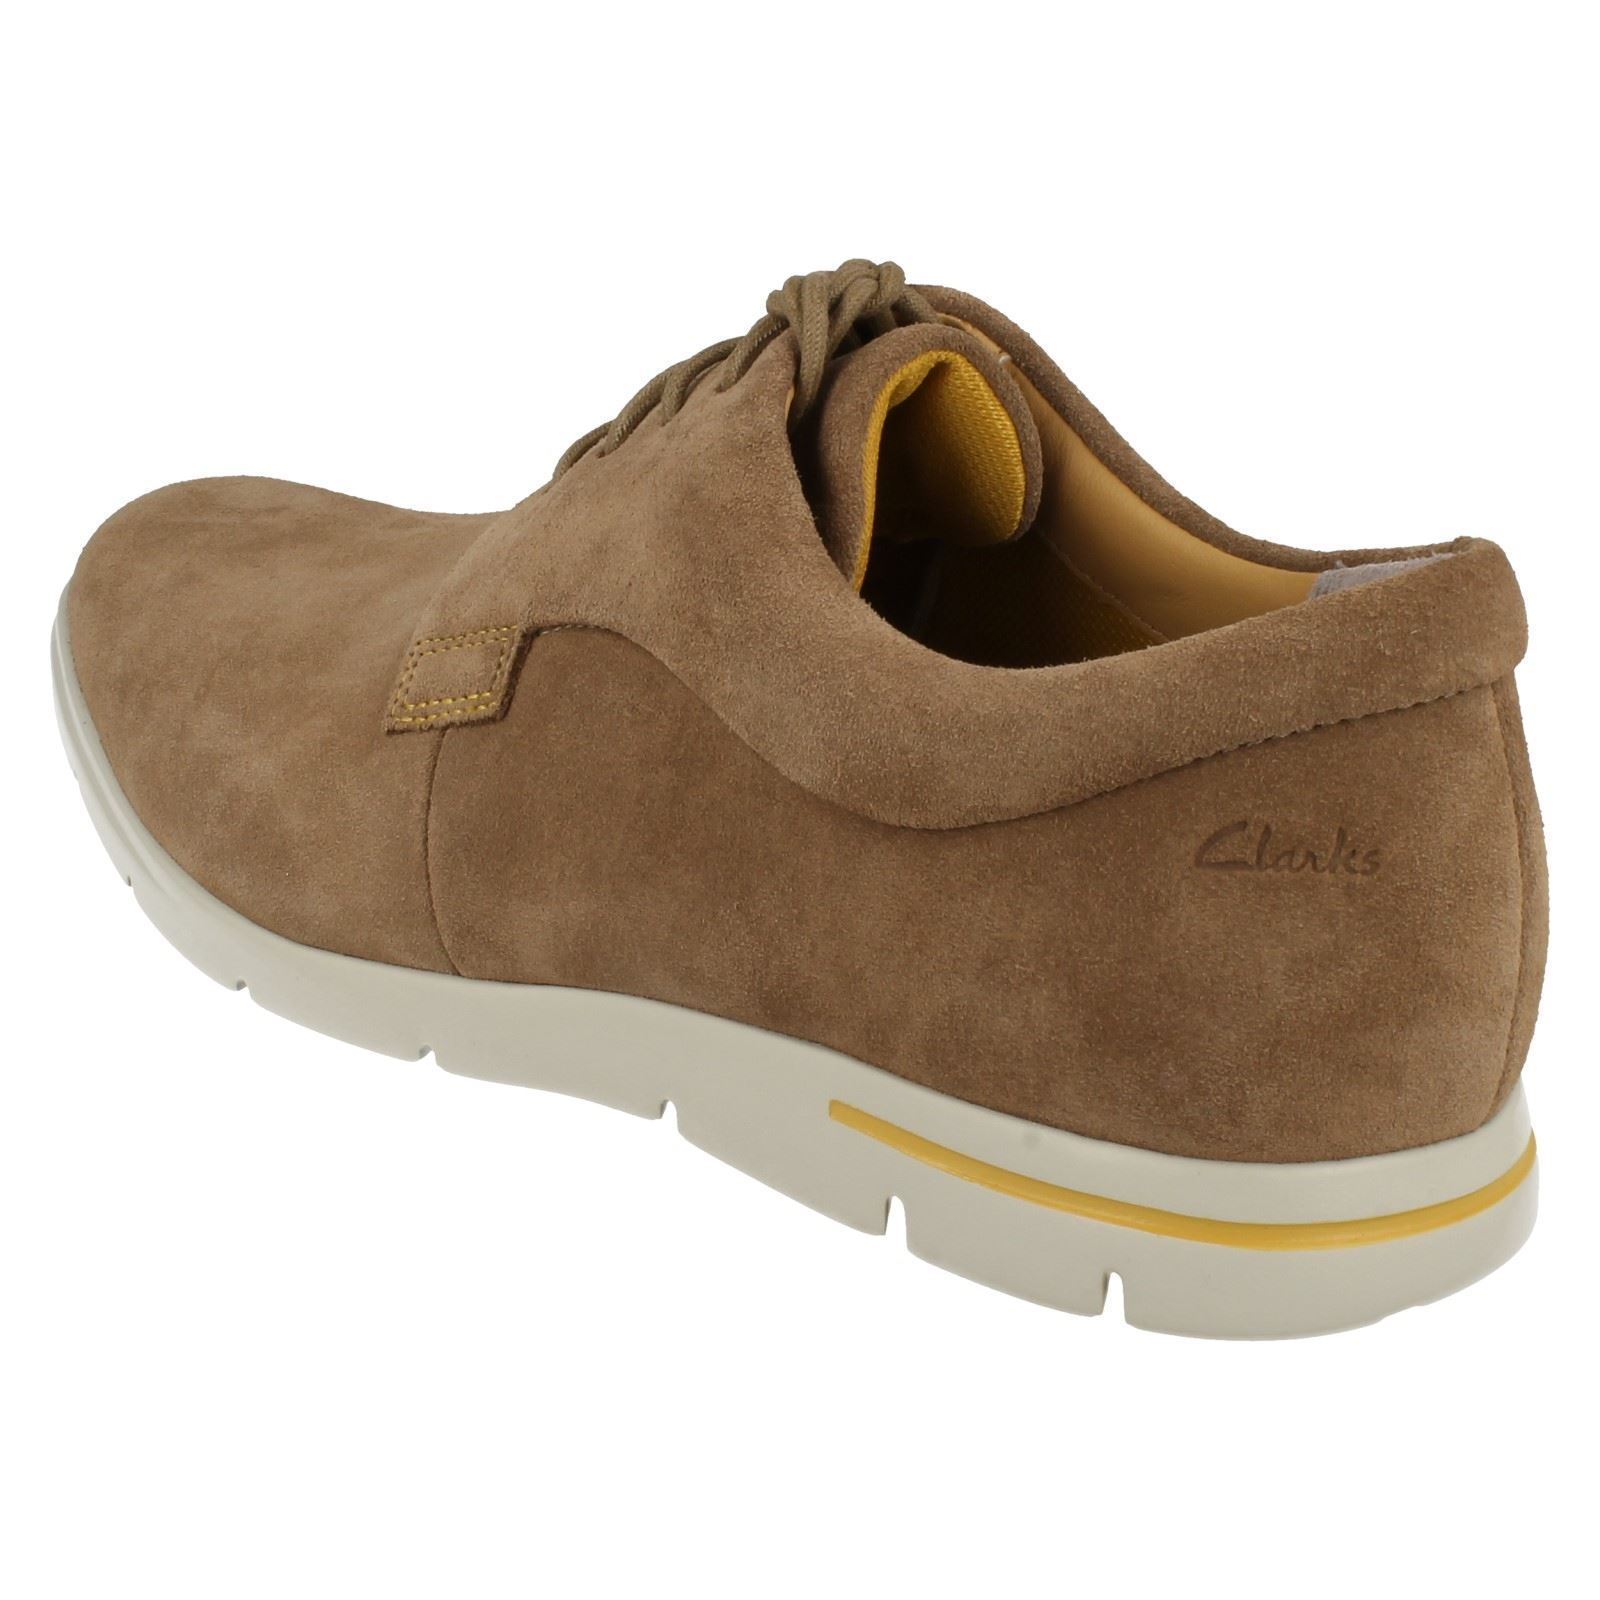 Mens Clarks Leather Suede Lace Up Shoes - Denner Motion